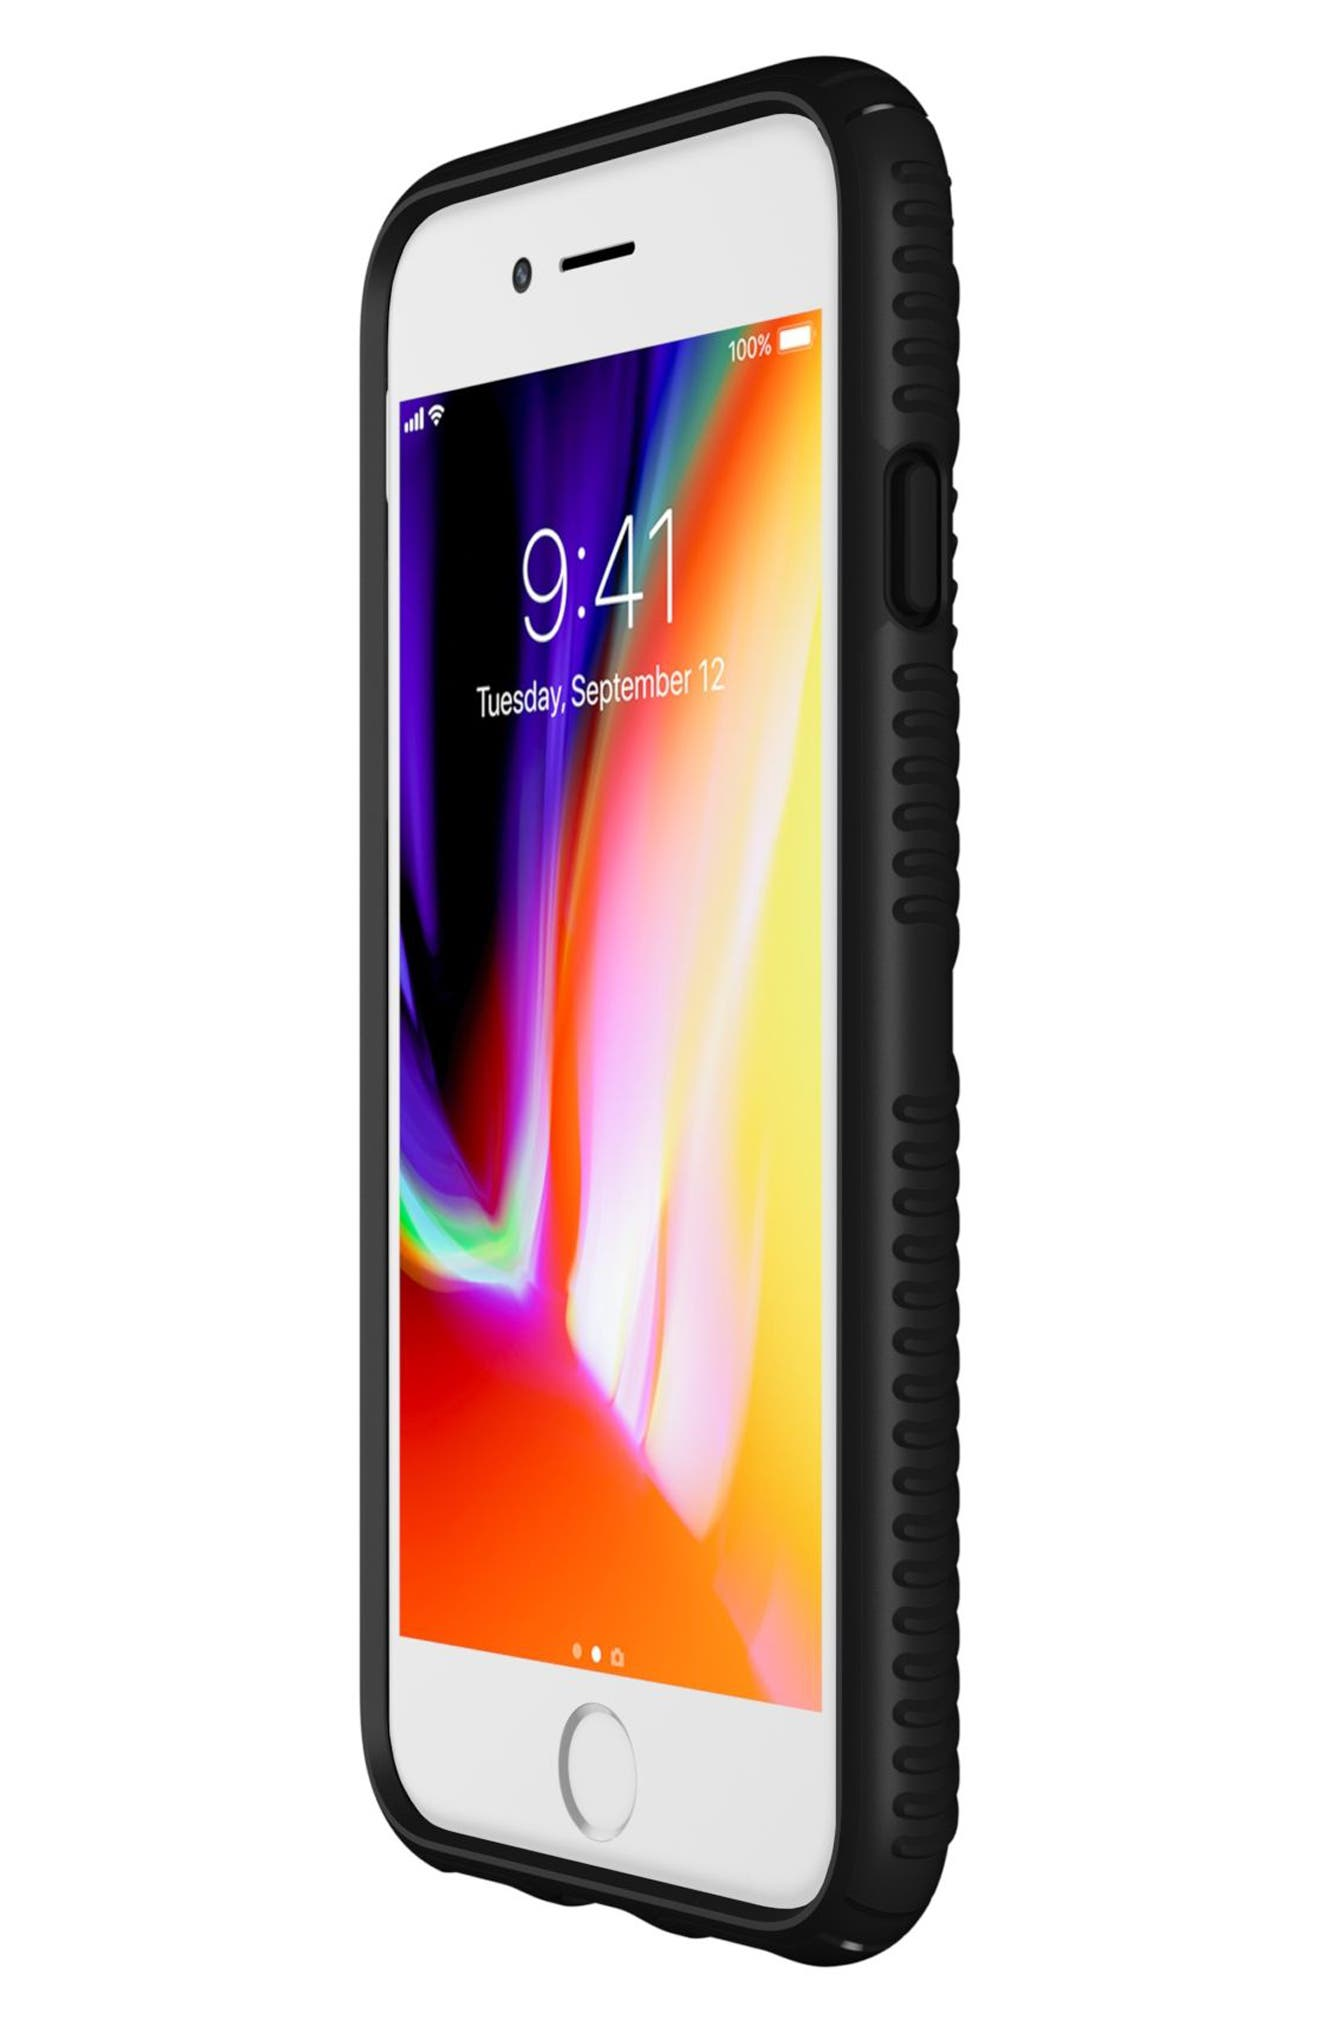 Grip iPhone 6/6s/7/8 Case,                             Alternate thumbnail 7, color,                             Black/ Black